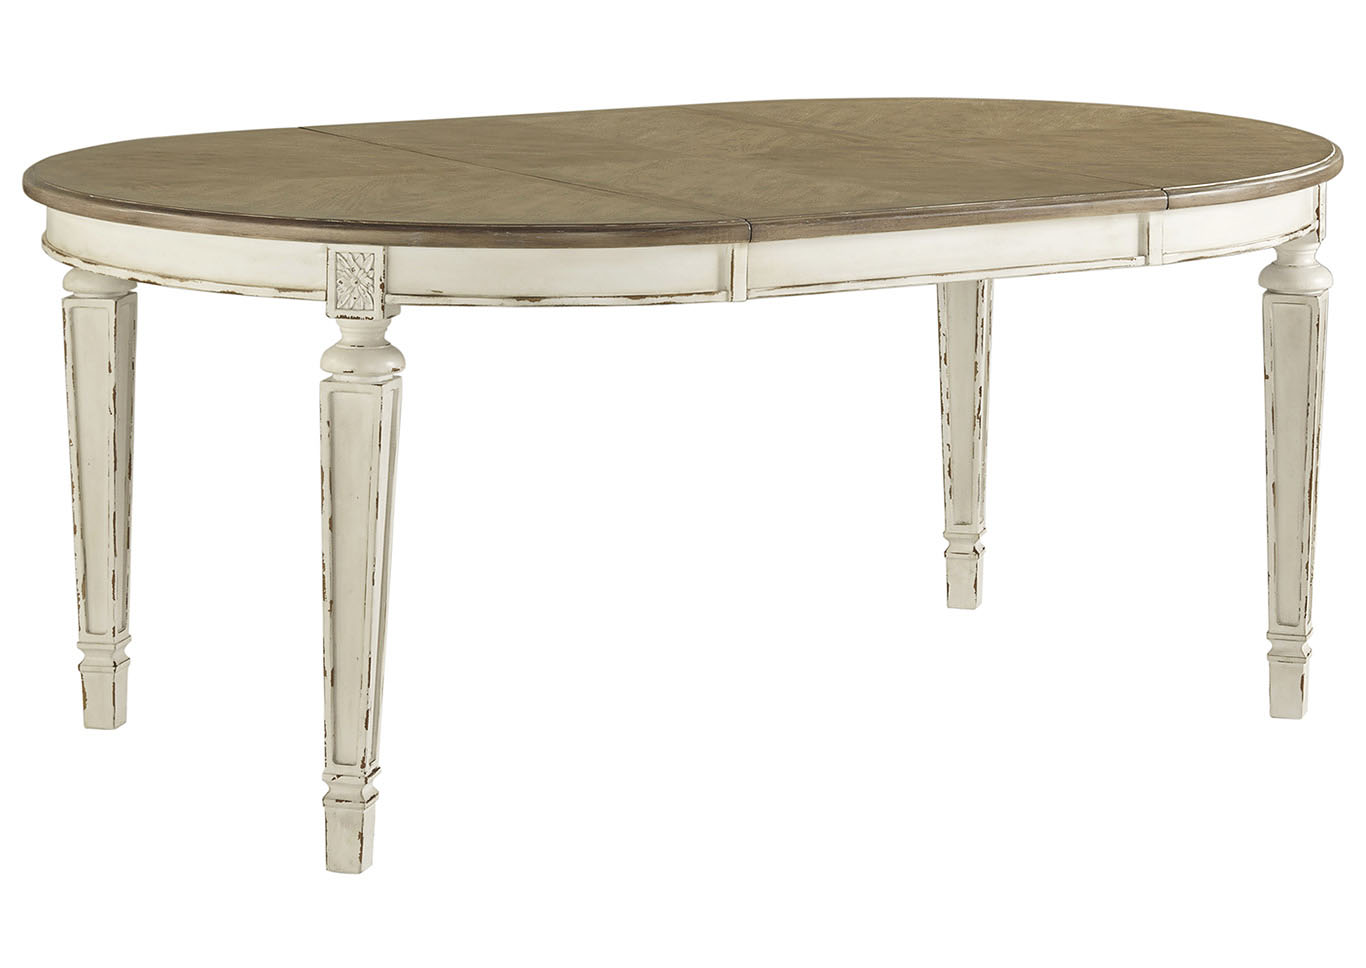 Realyn Chipped White Oval Extended Dining Table,Signature Design By Ashley